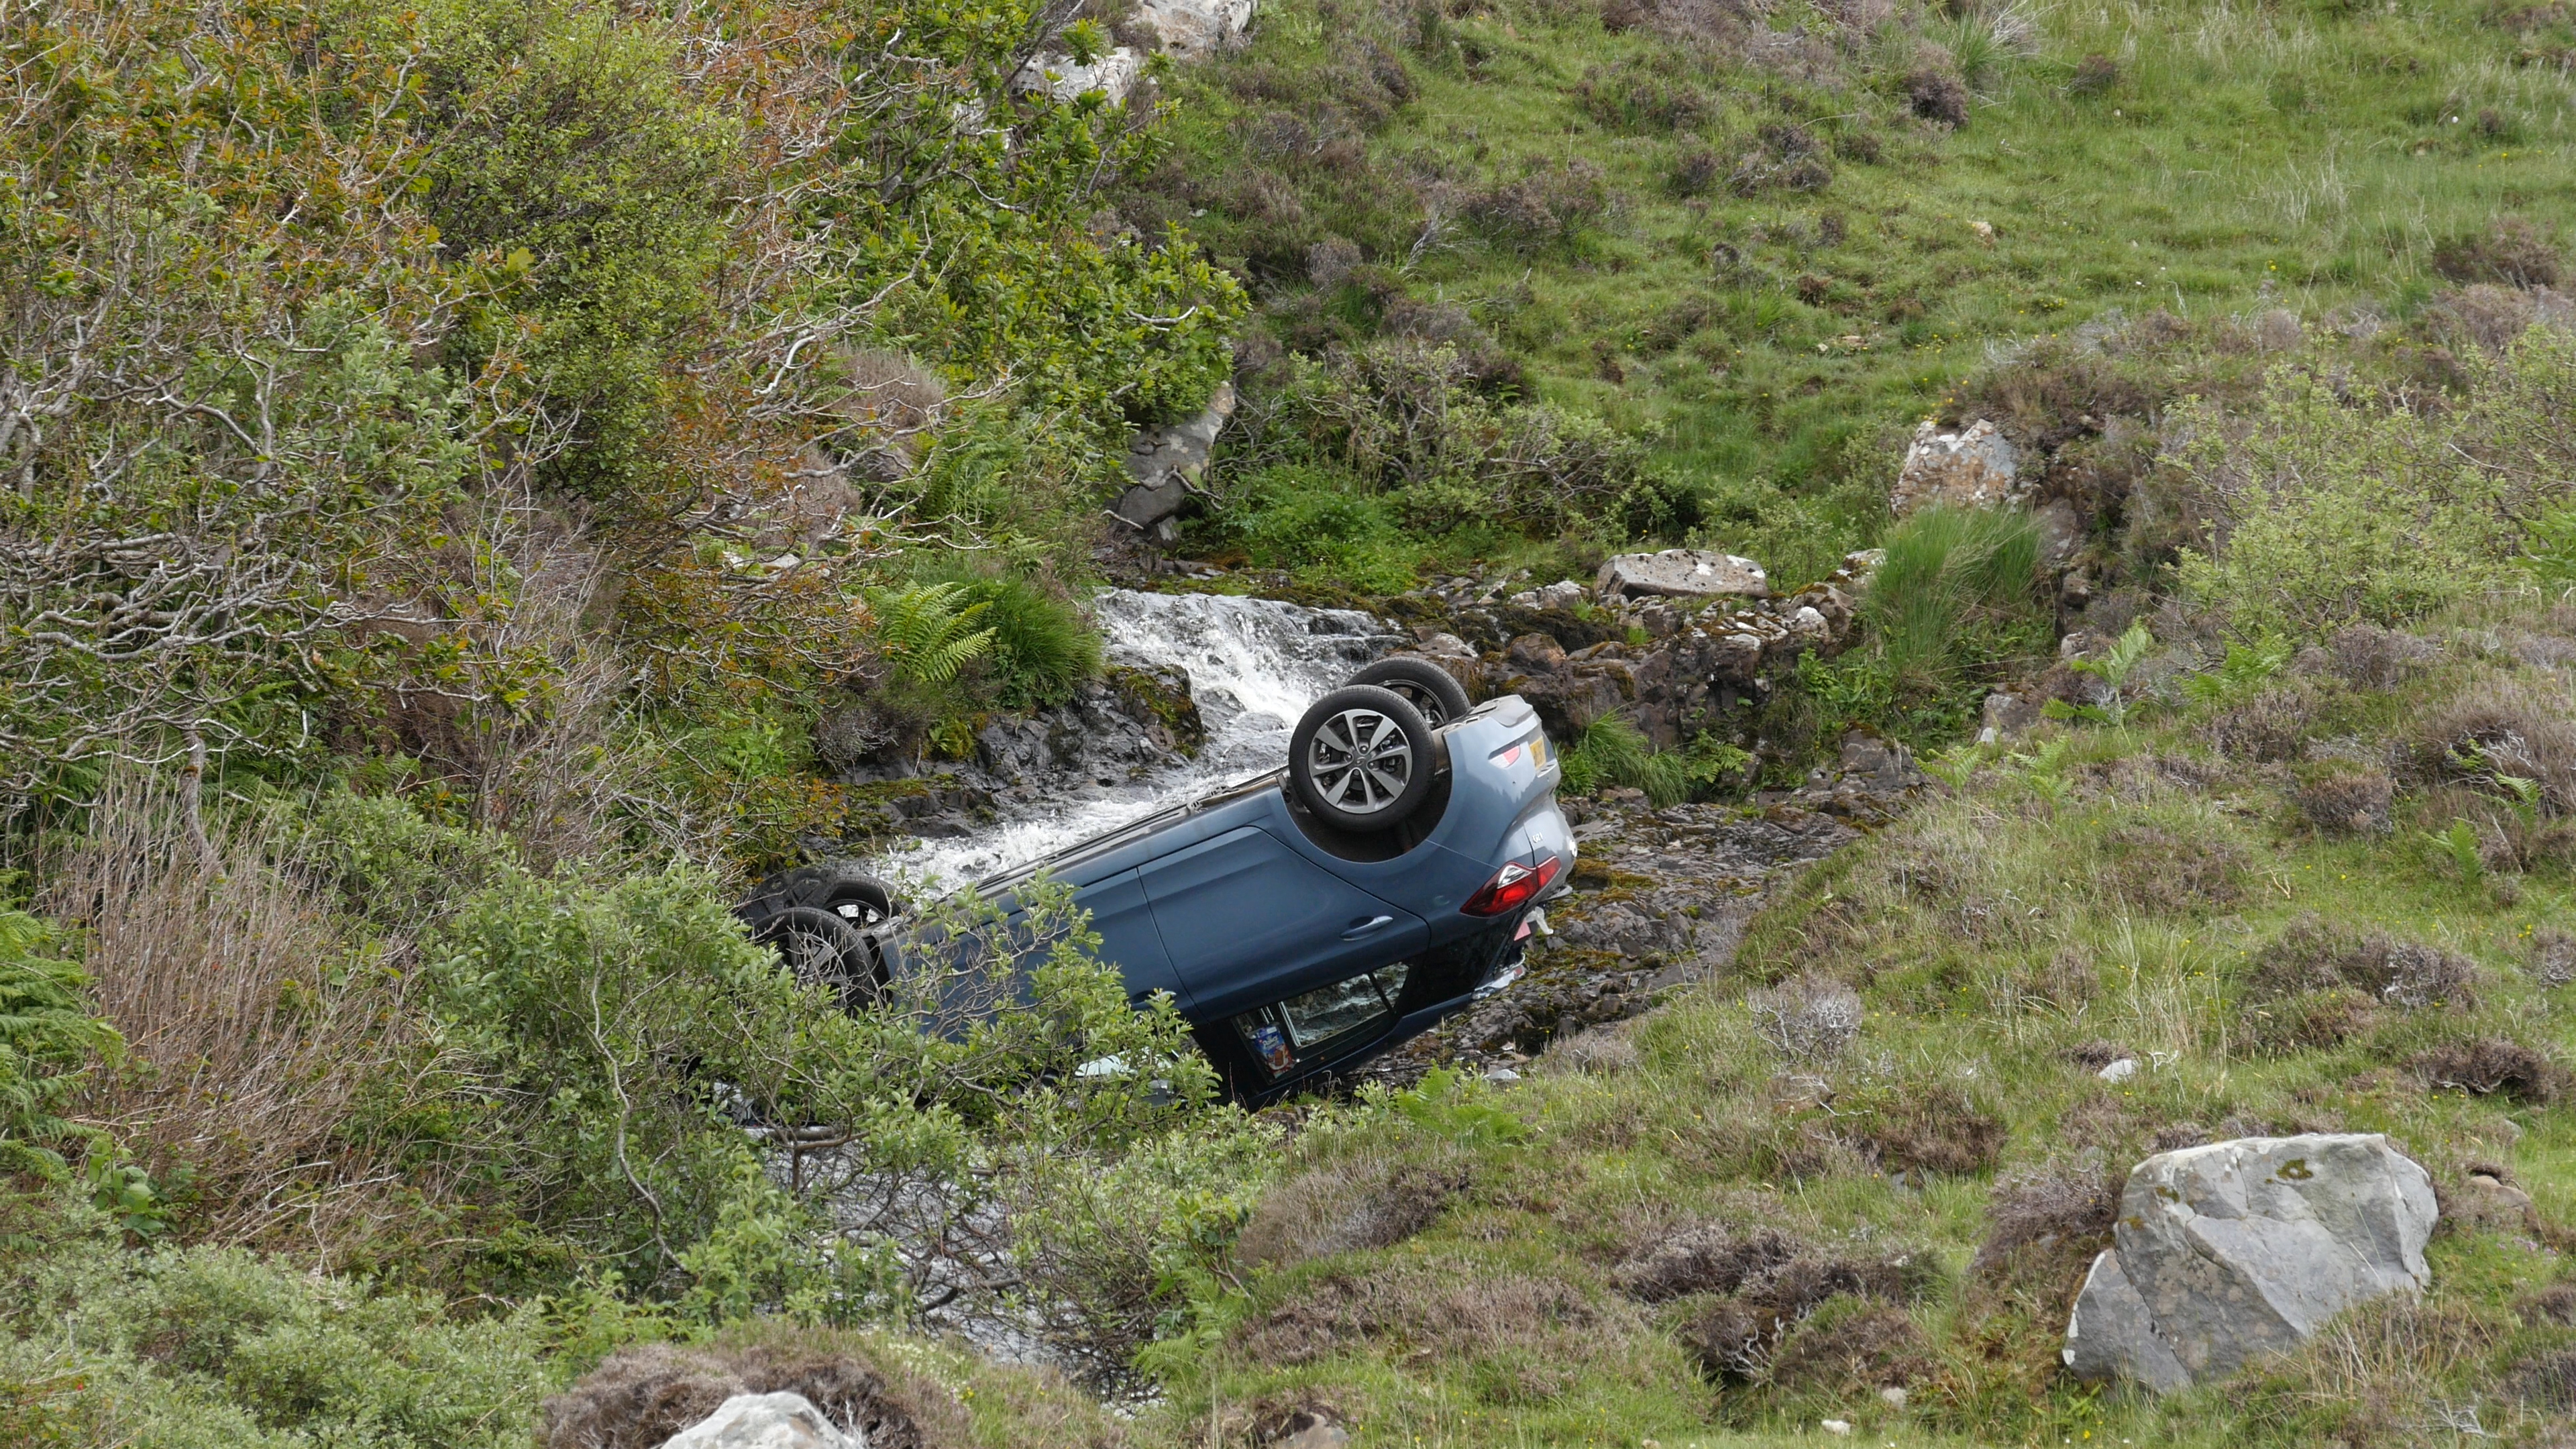 The car landed on its roof in the burn